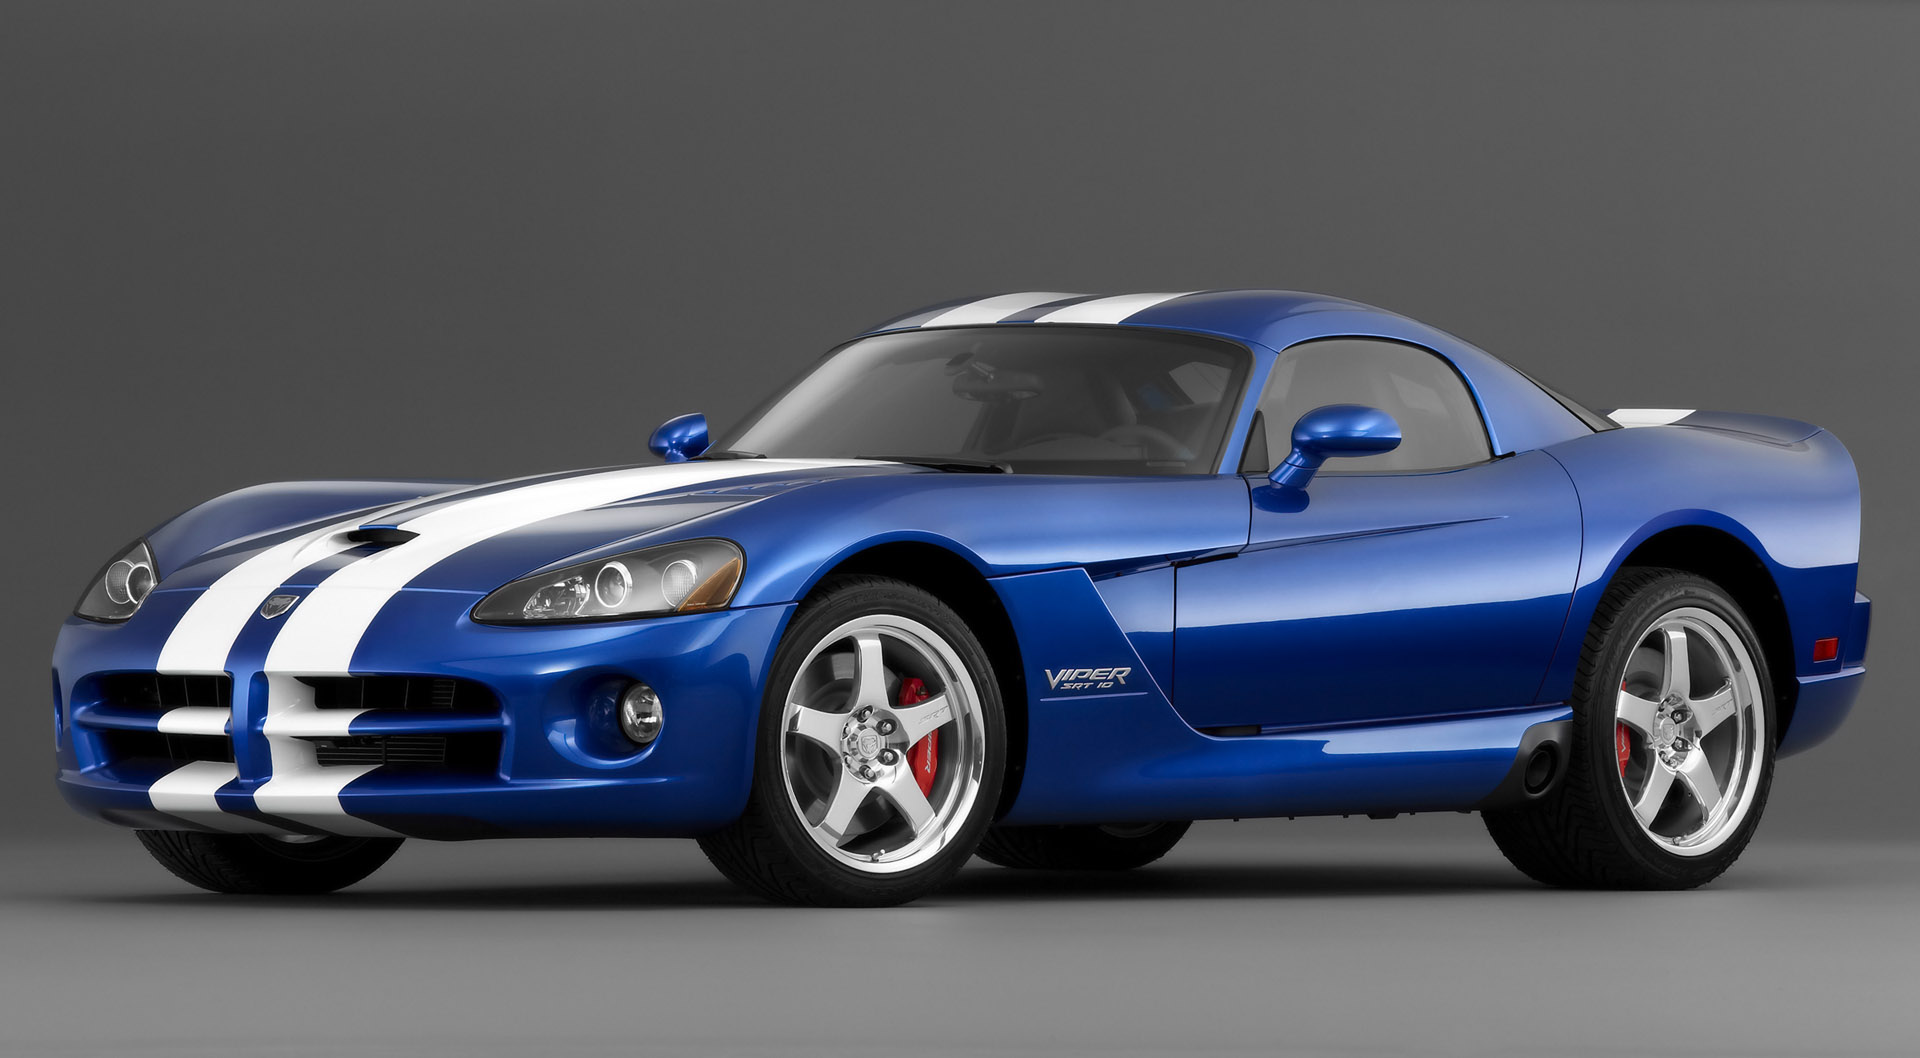 A farewell to the iconic Dodge Viper is possible after 2017